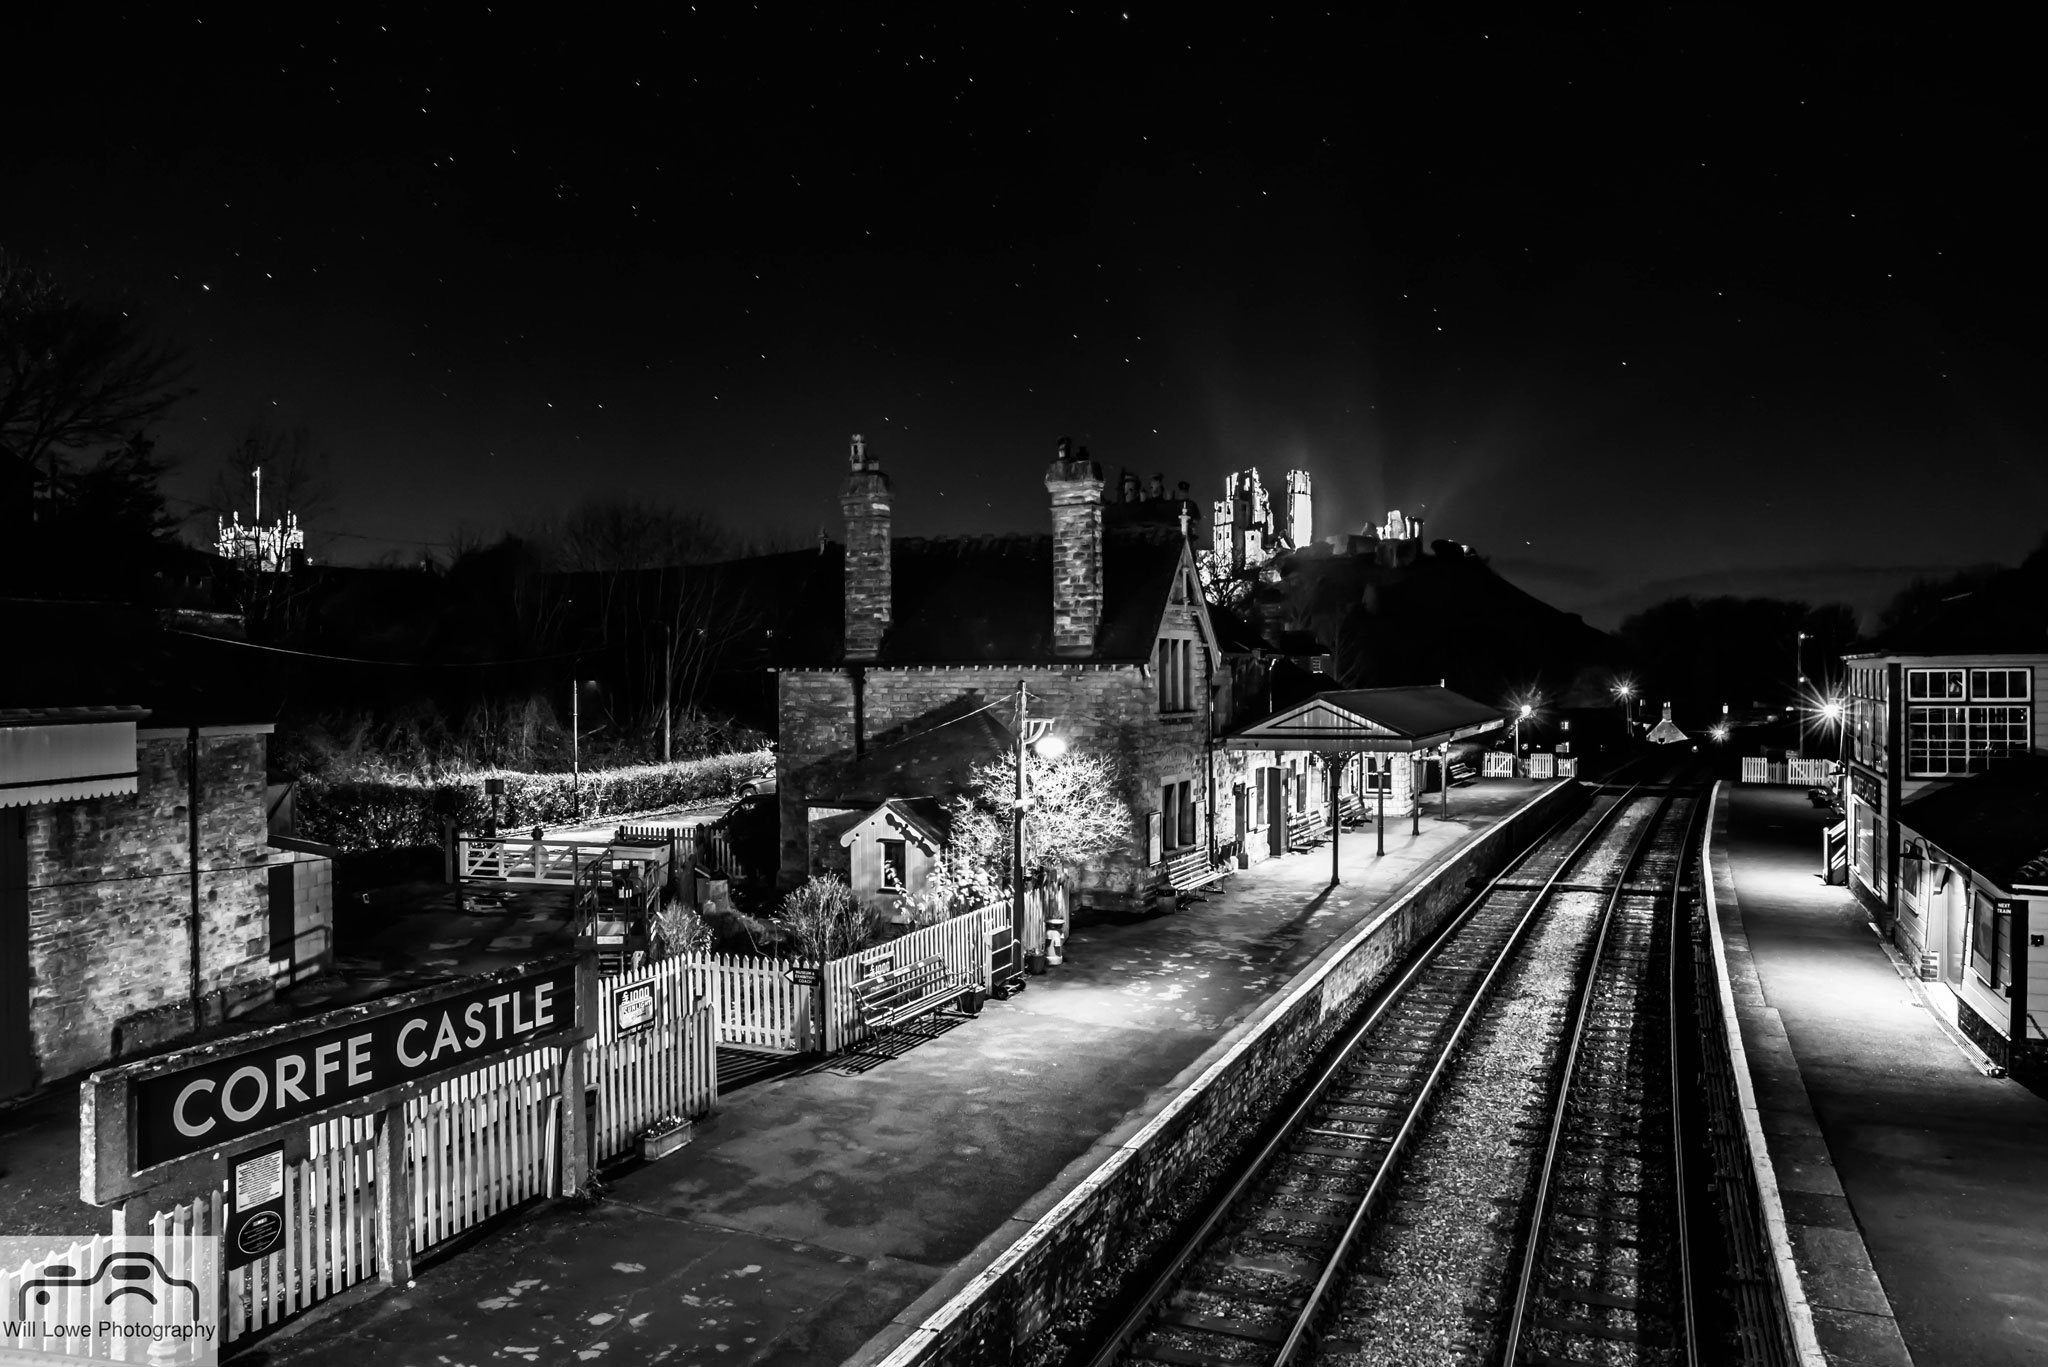 Corfe Castle Railway Station by Will Lowe Photography